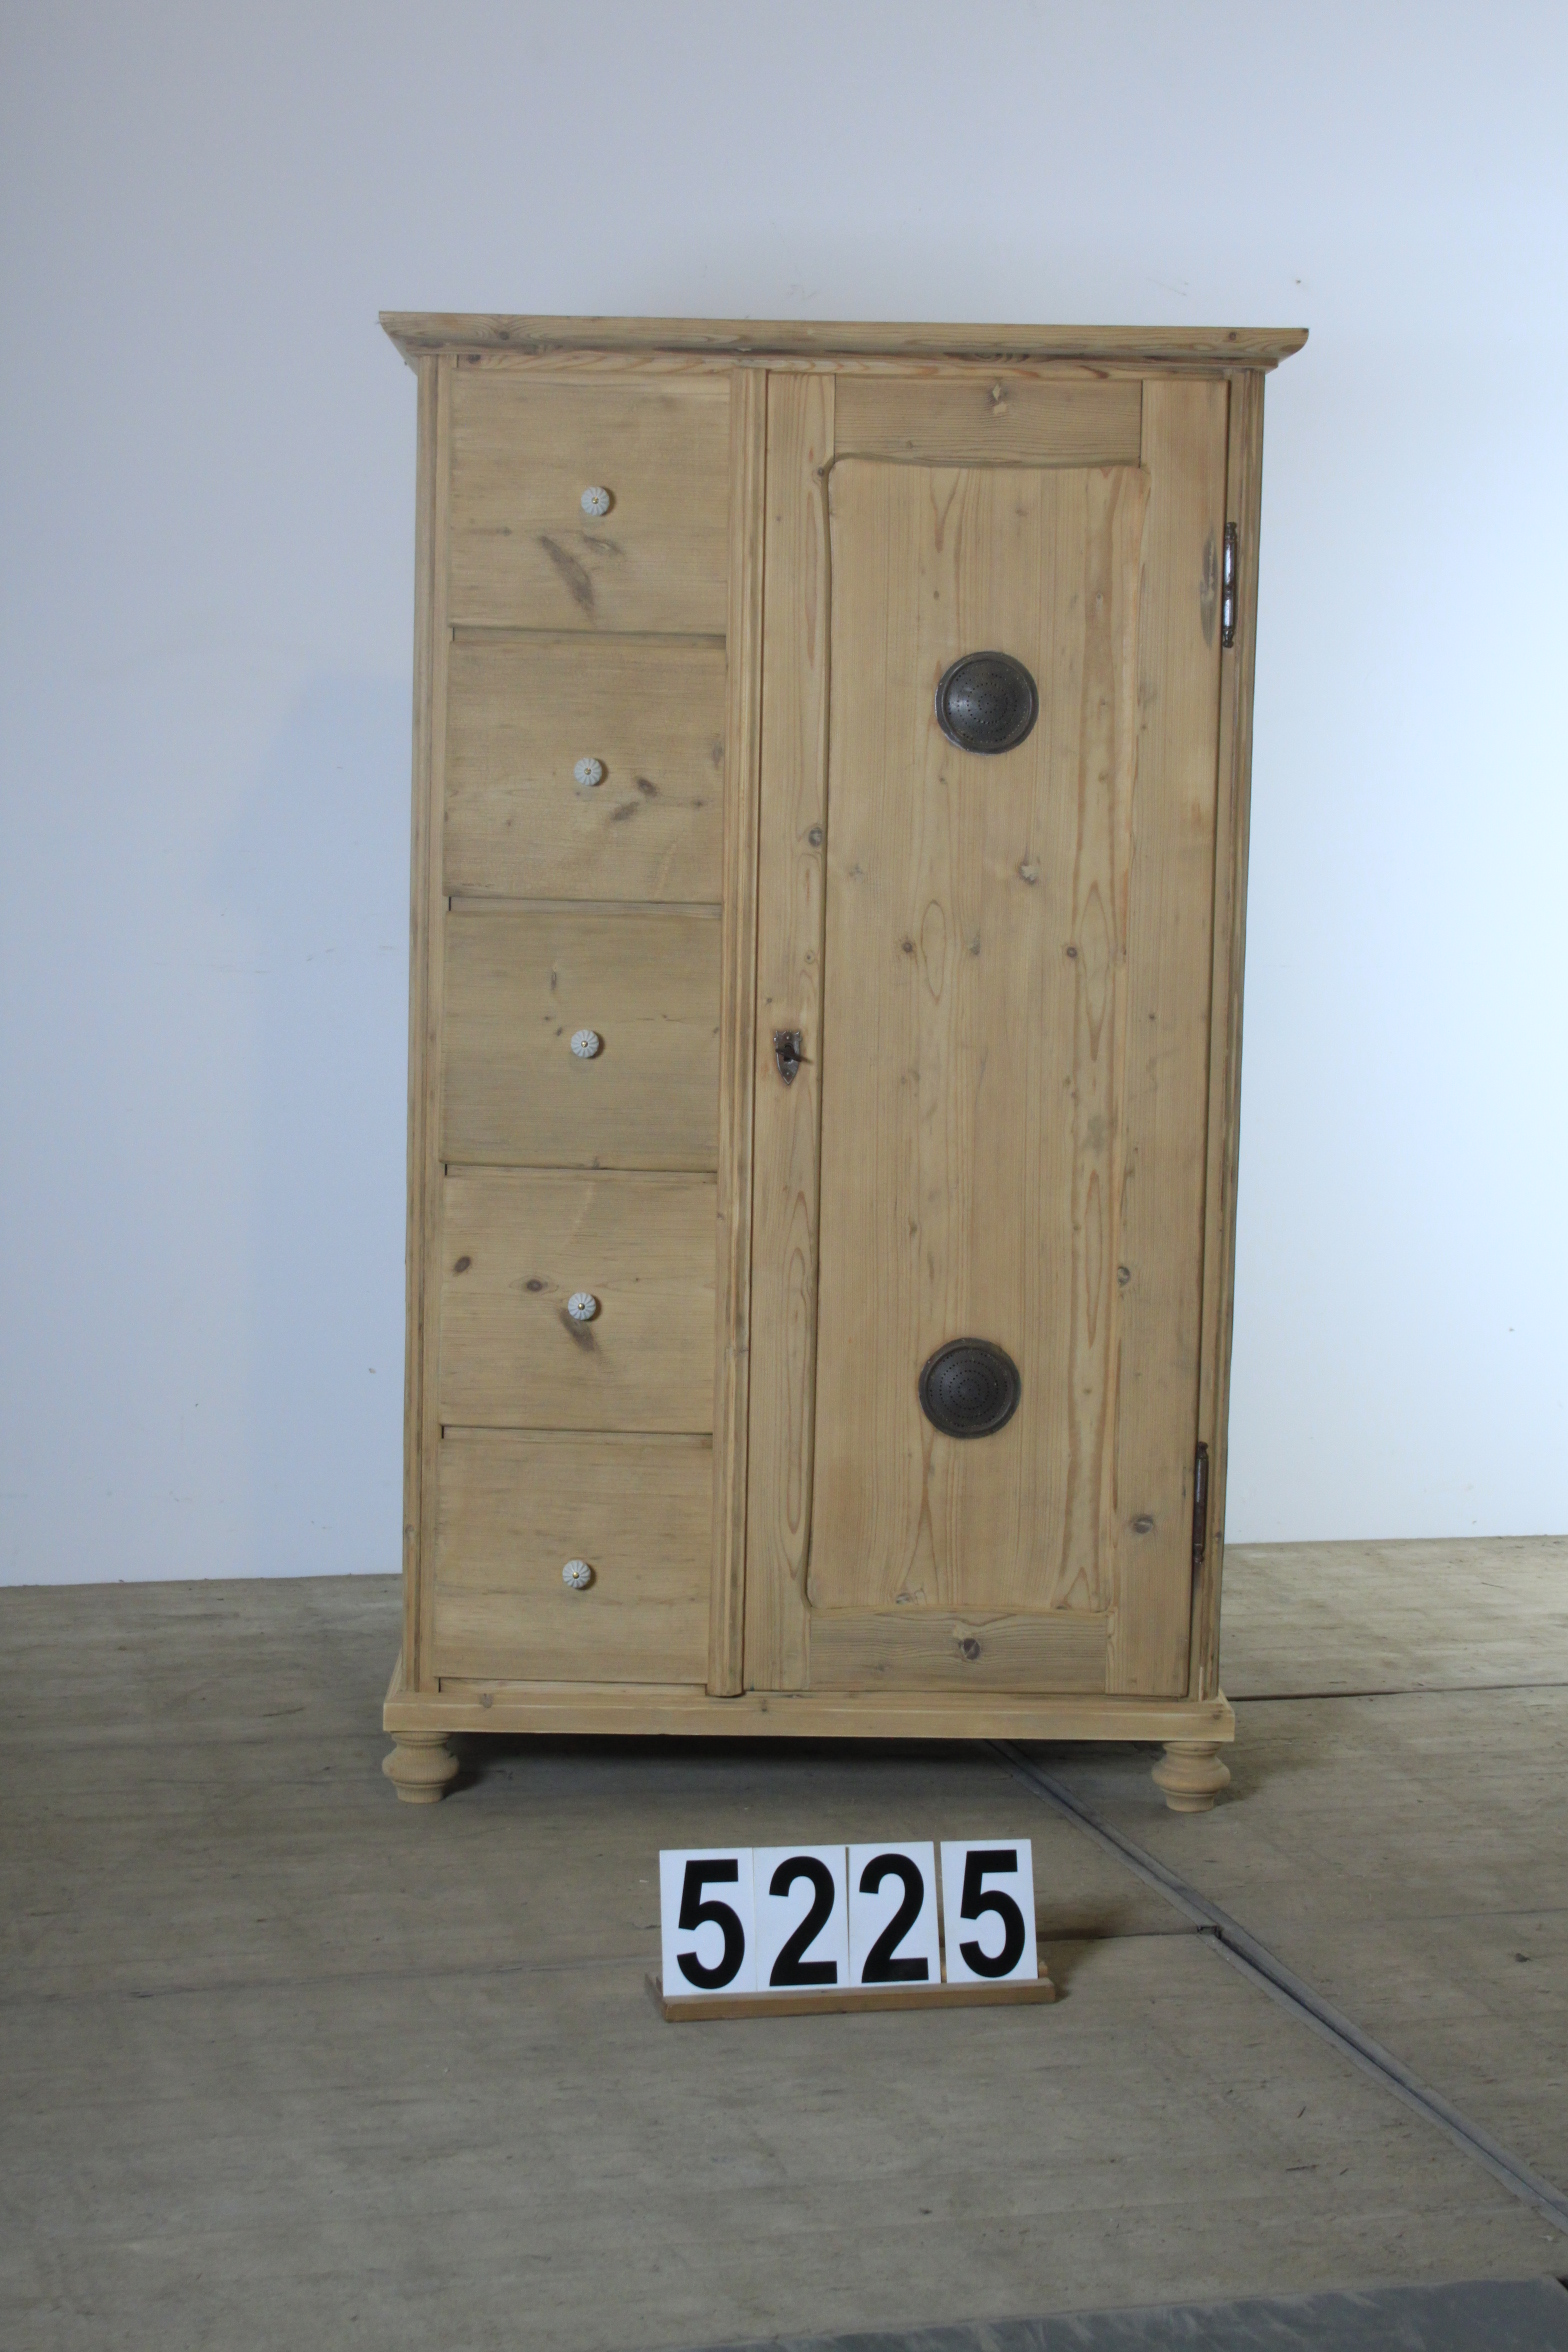 02 Antique pine furniture